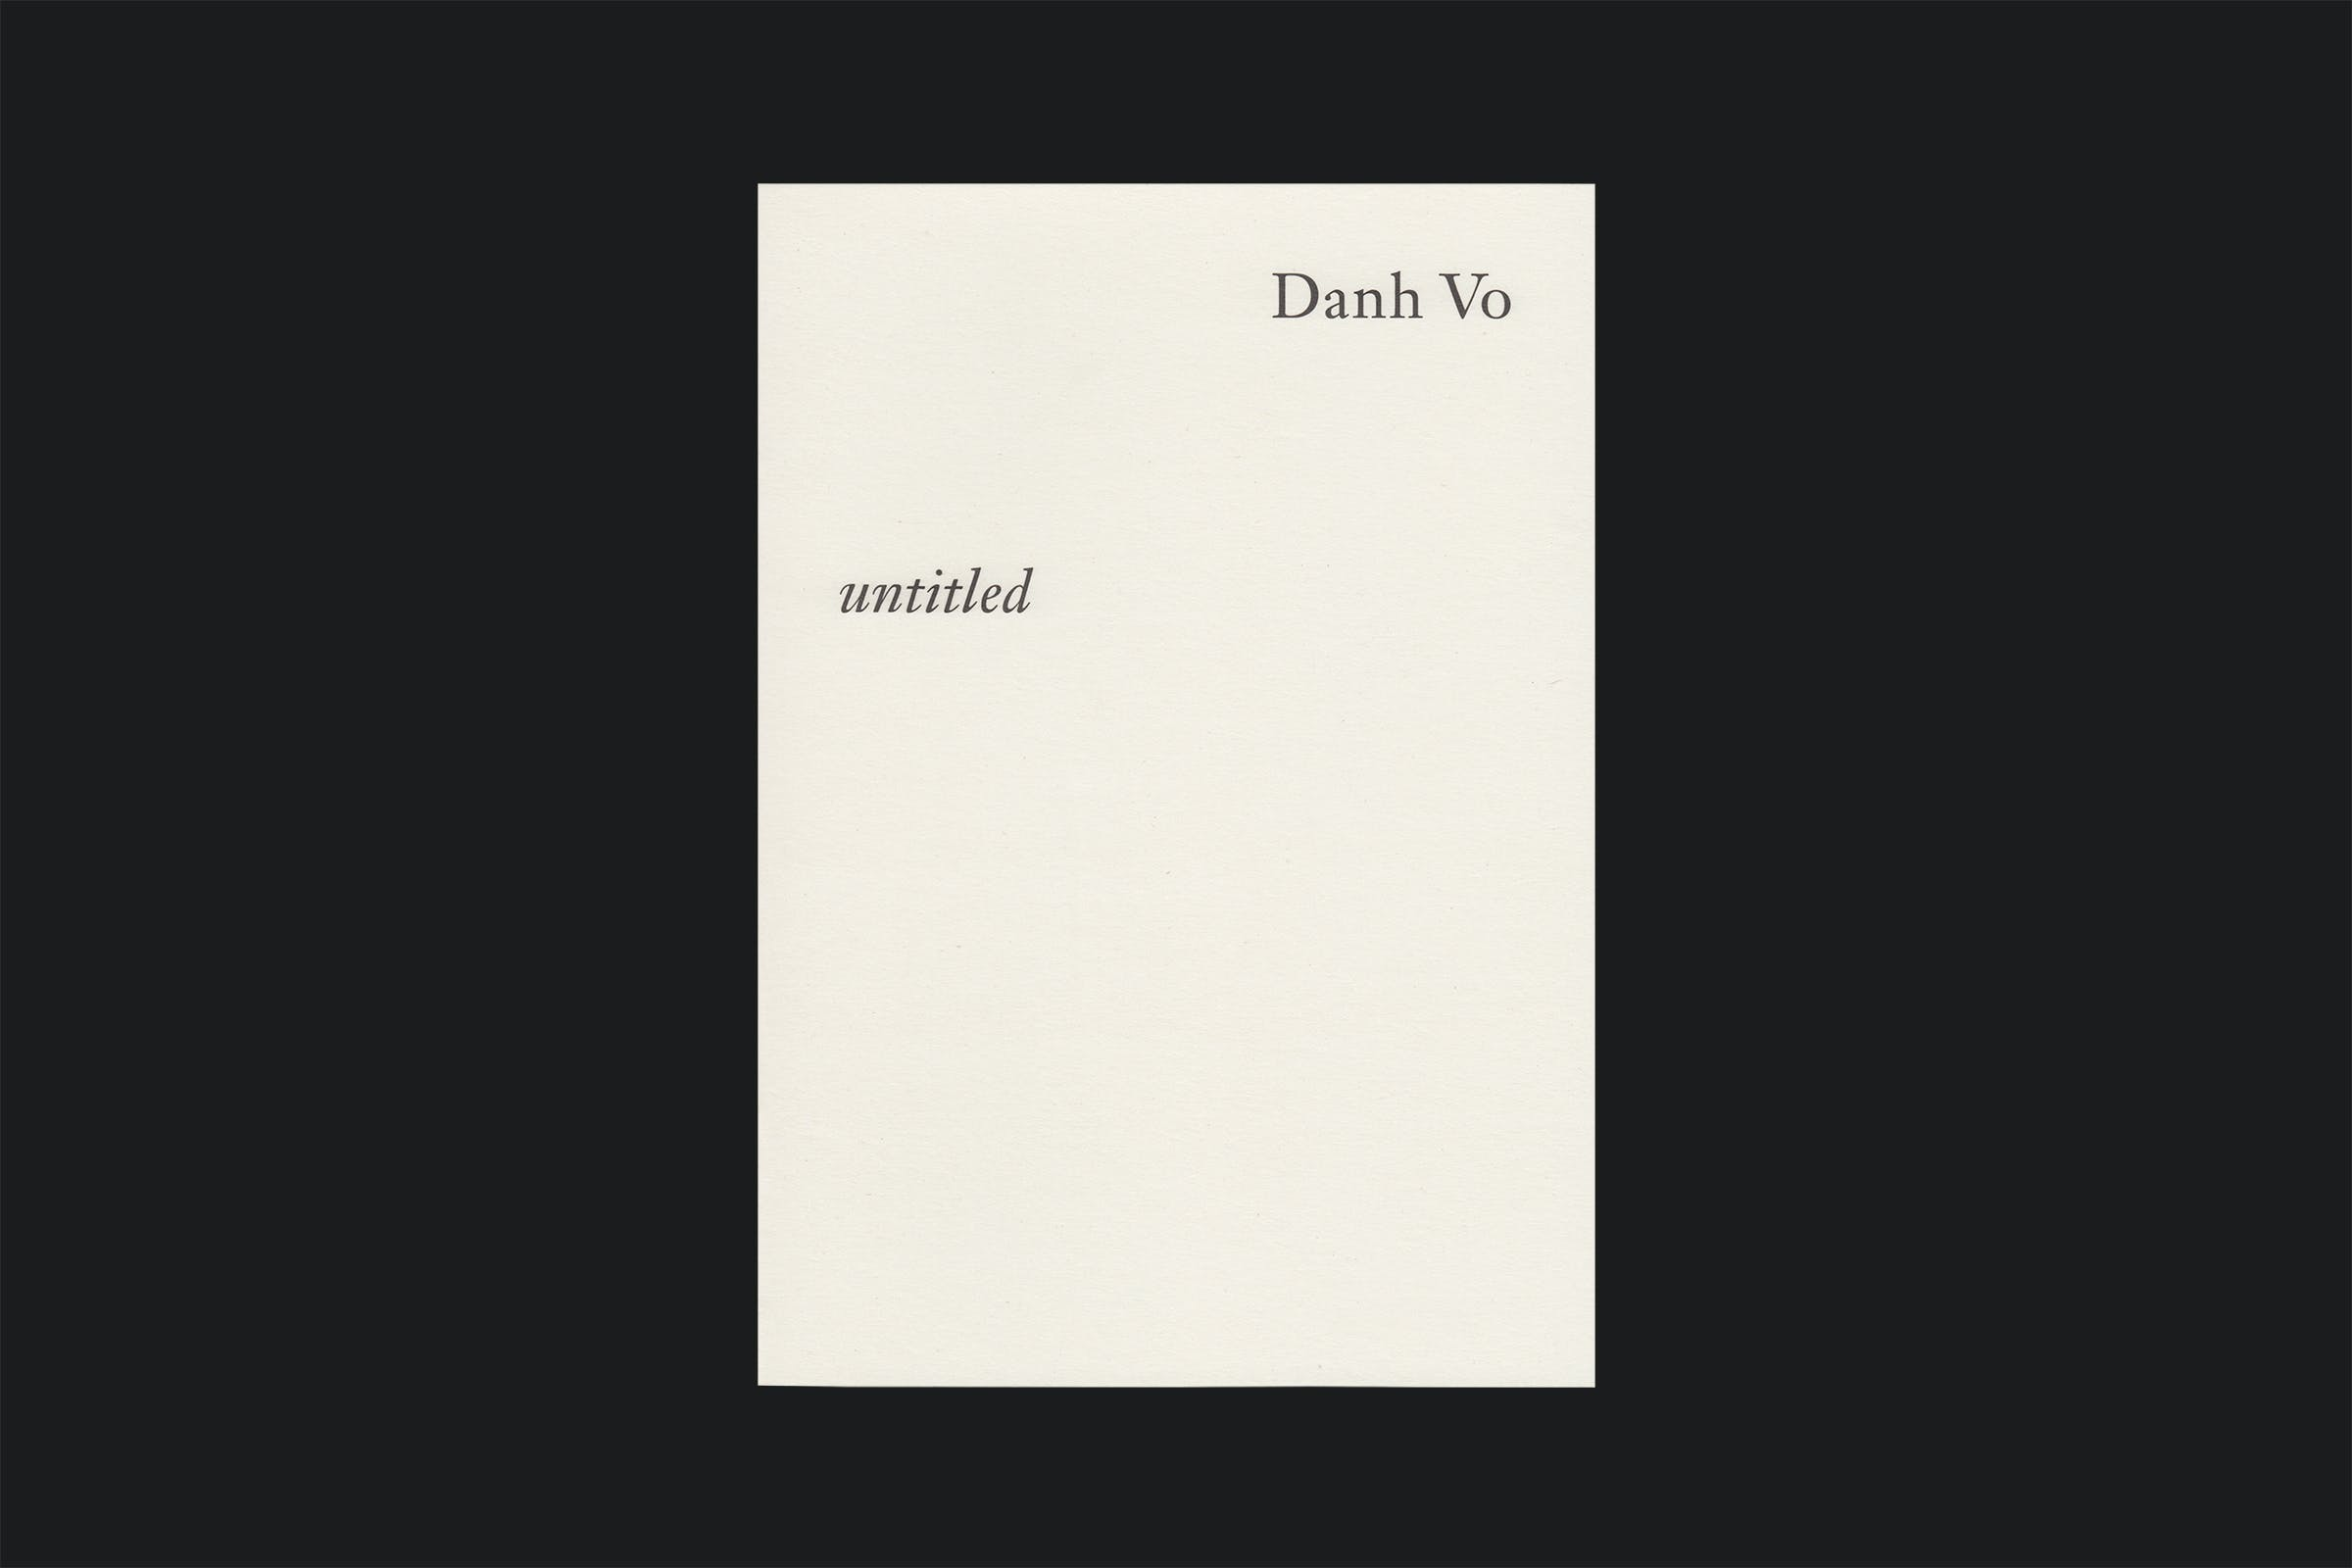 Wolfe Hall, untitled, dahn vo, south london gallery, gallery guide, graphic design